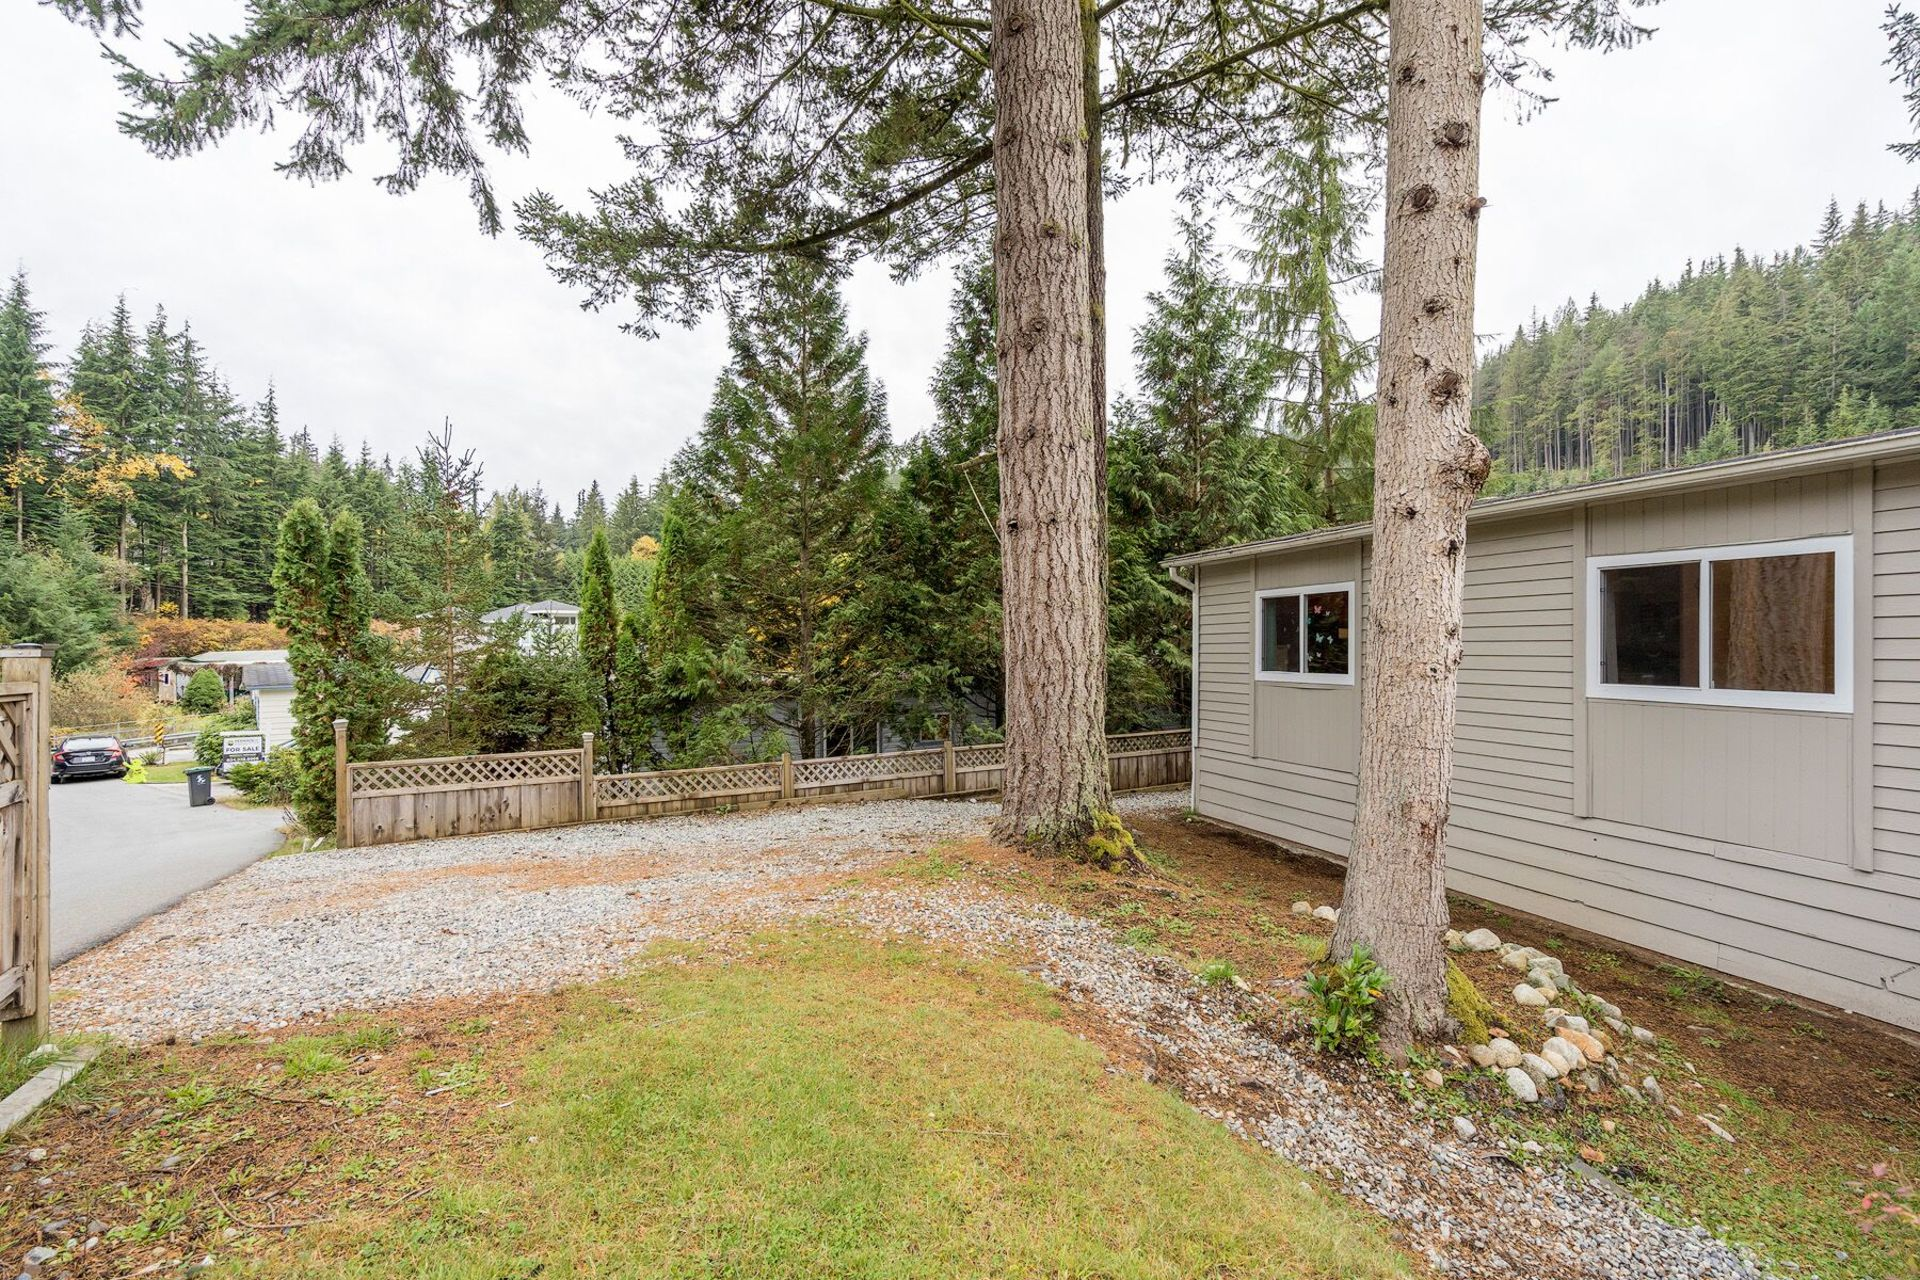 rhfzsc84 at 61 - 3295 Sunnyside Road, Anmore, Port Moody